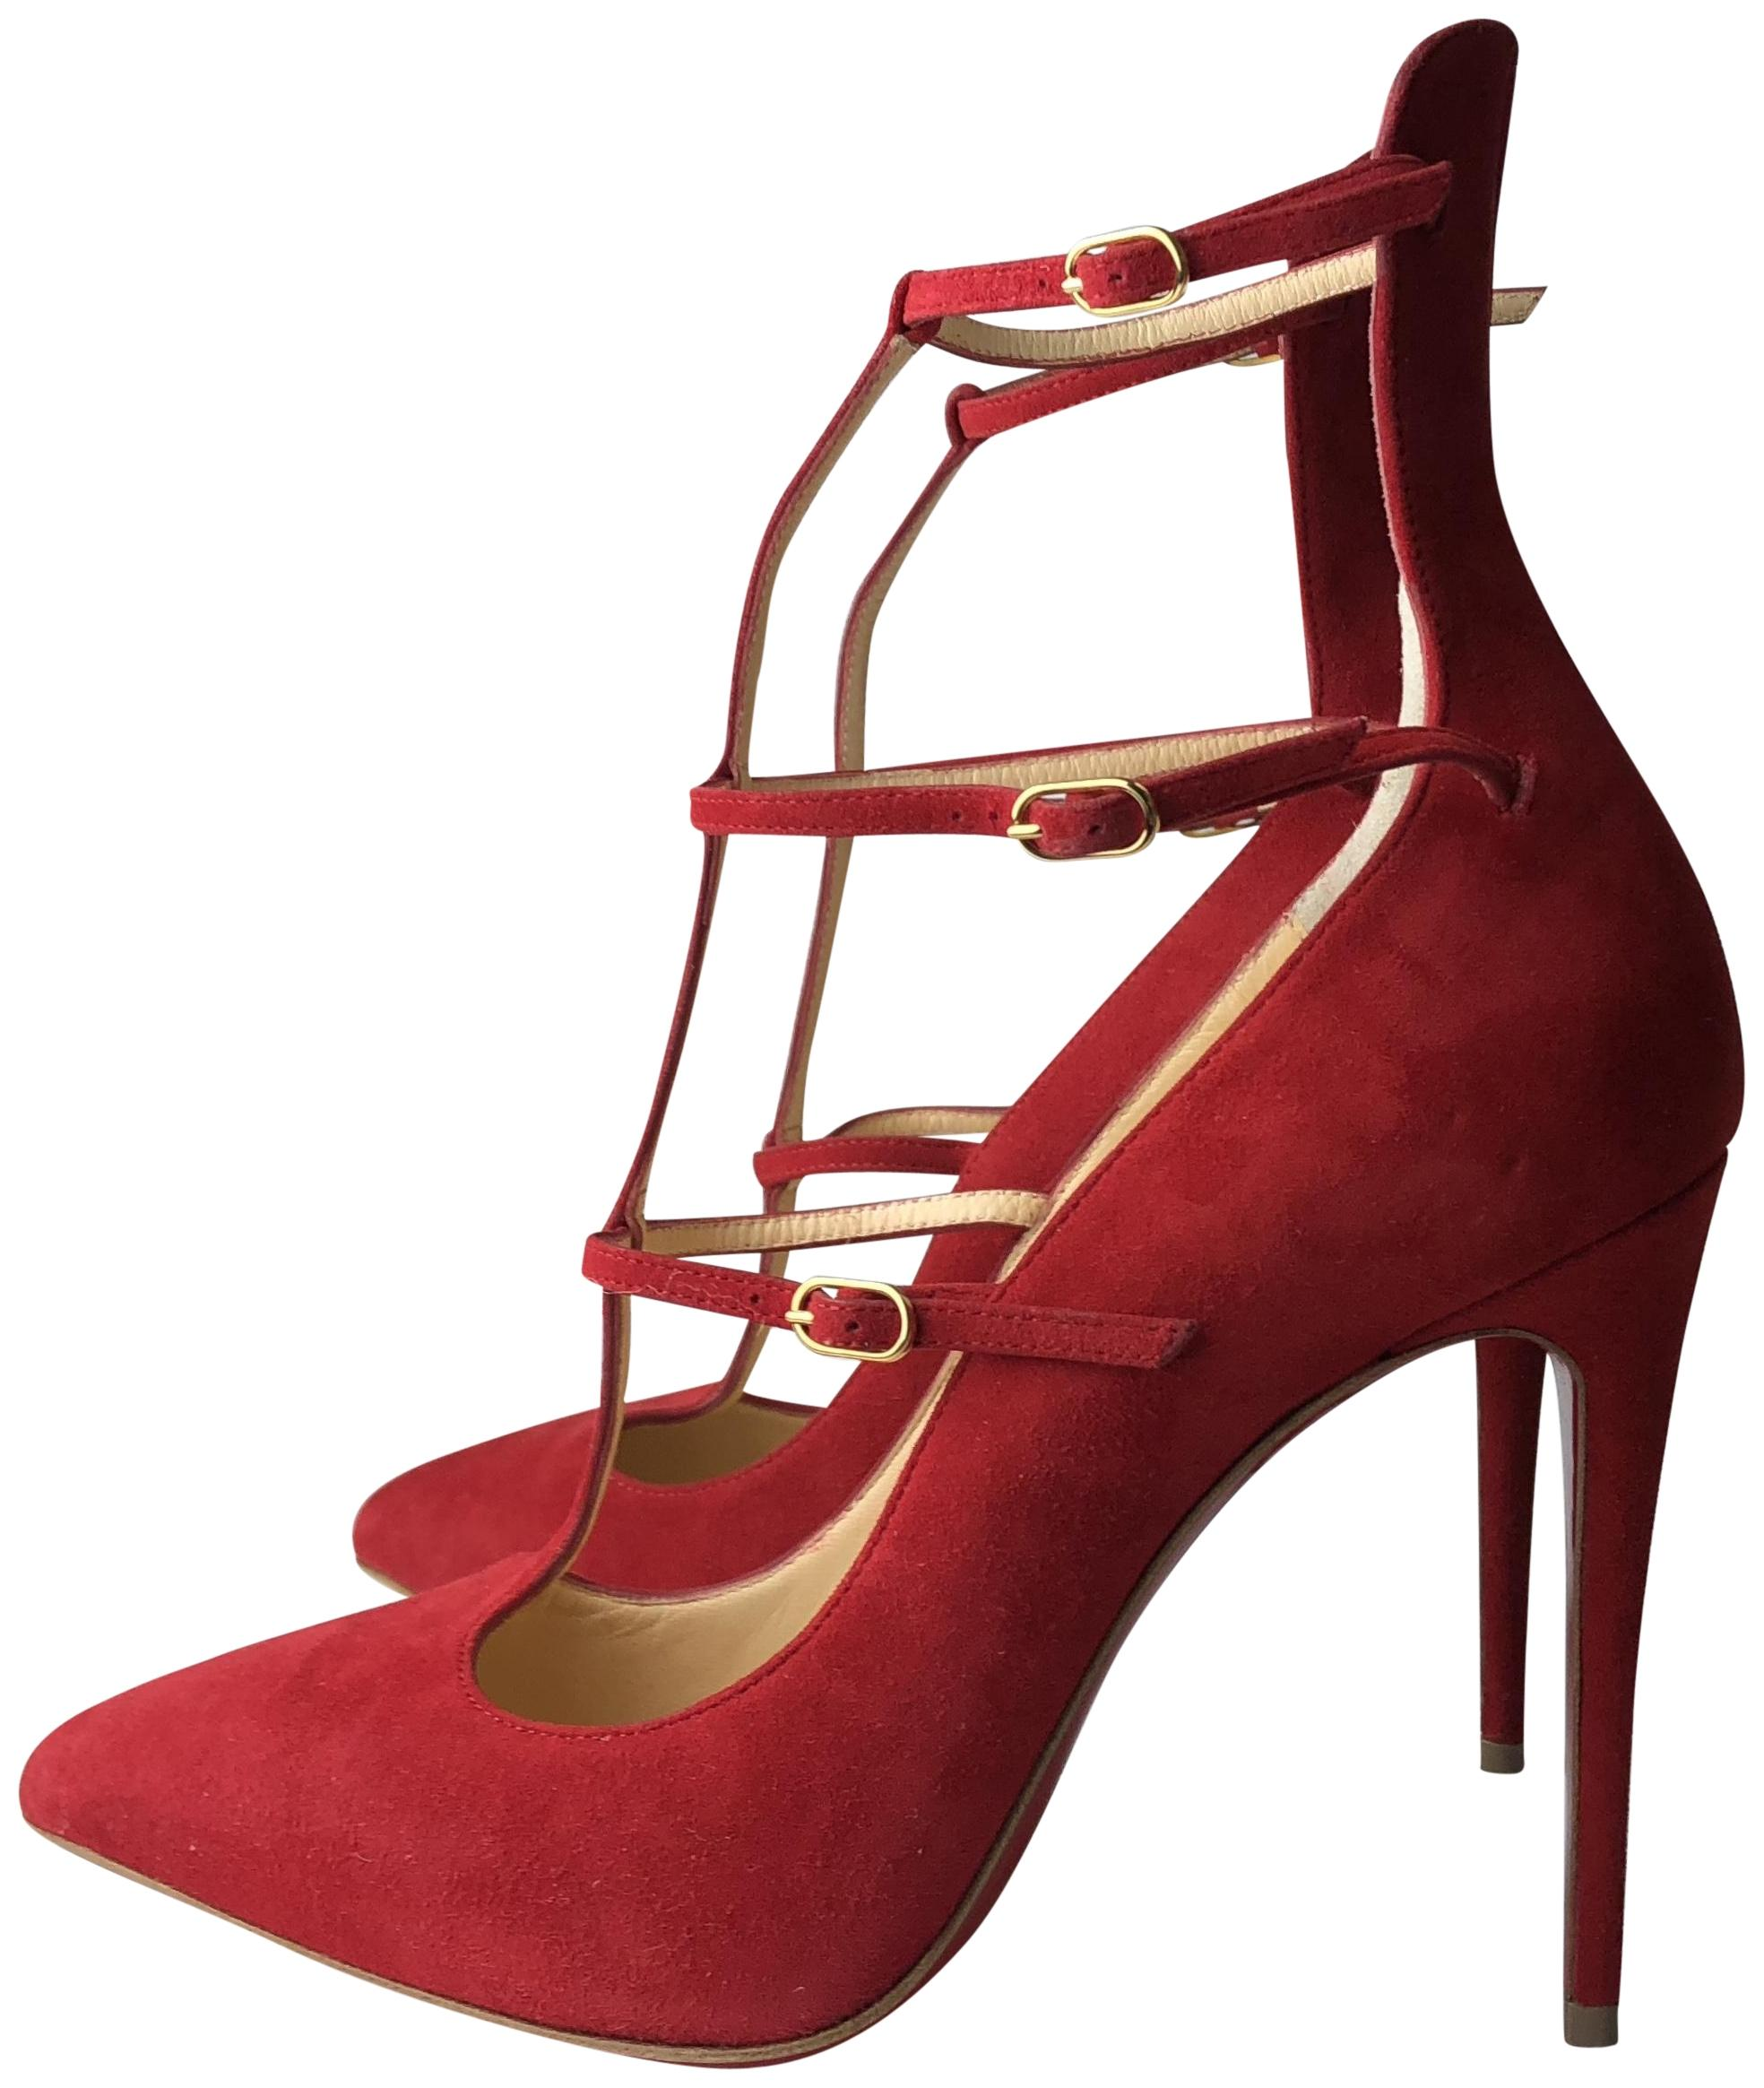 9052d17dfaf clearance christian louboutin red pumps c9a05 5d84f